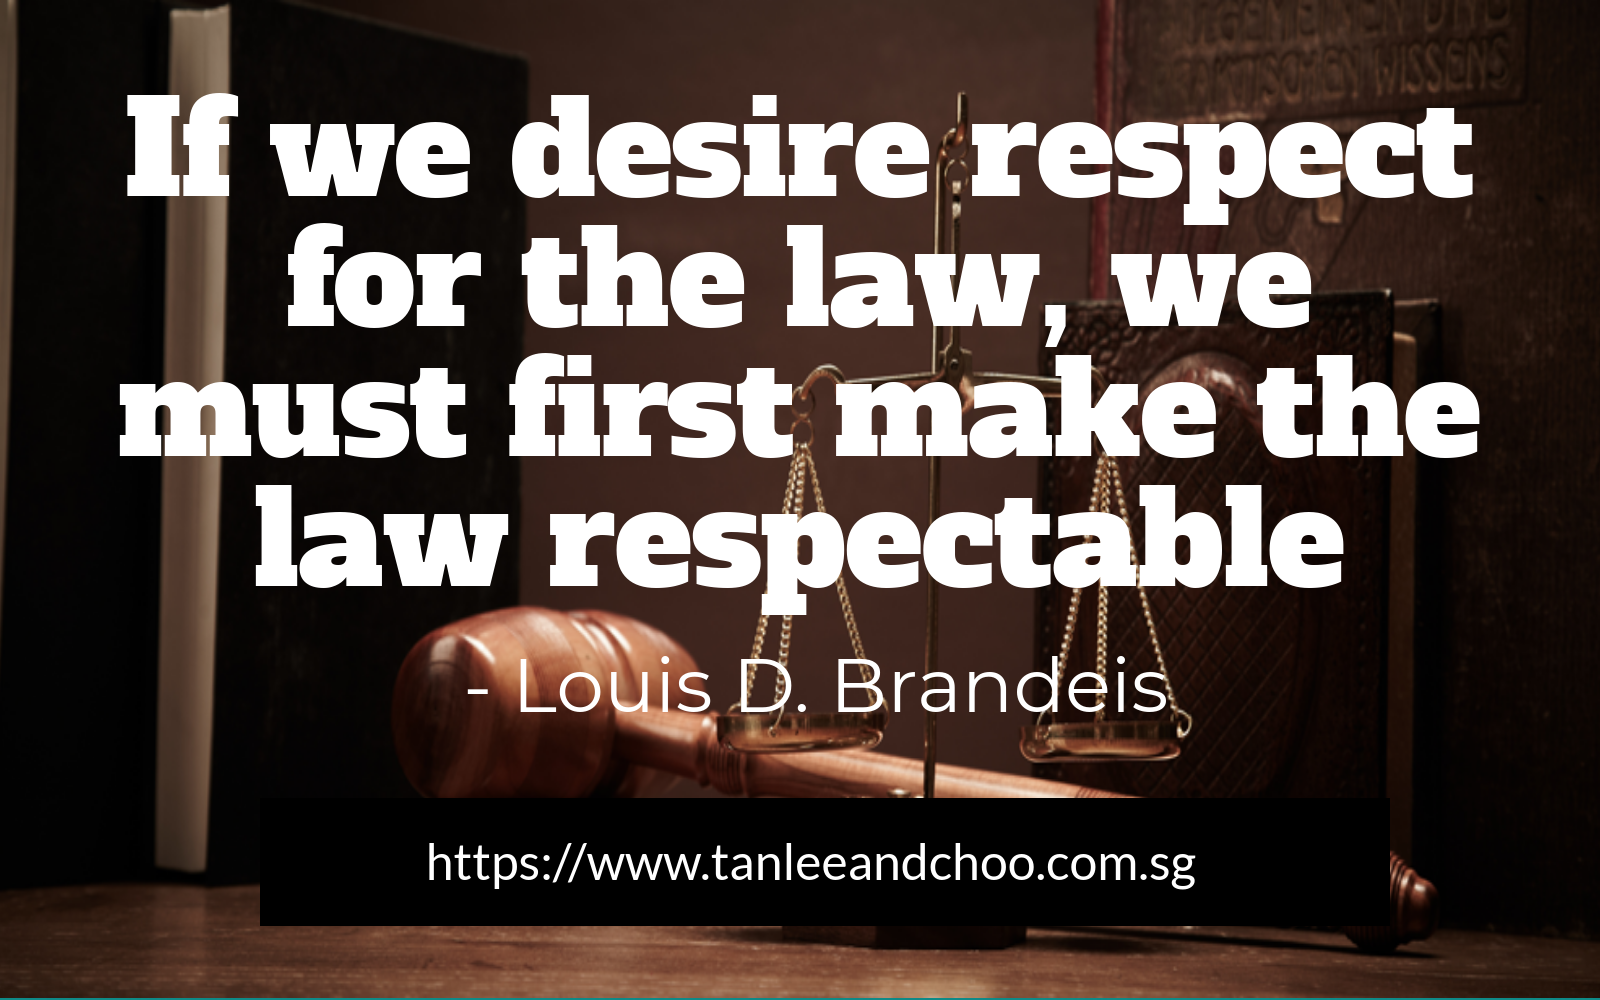 Quotes For Law Law Quotes Lawyer Quotes Post Quotes